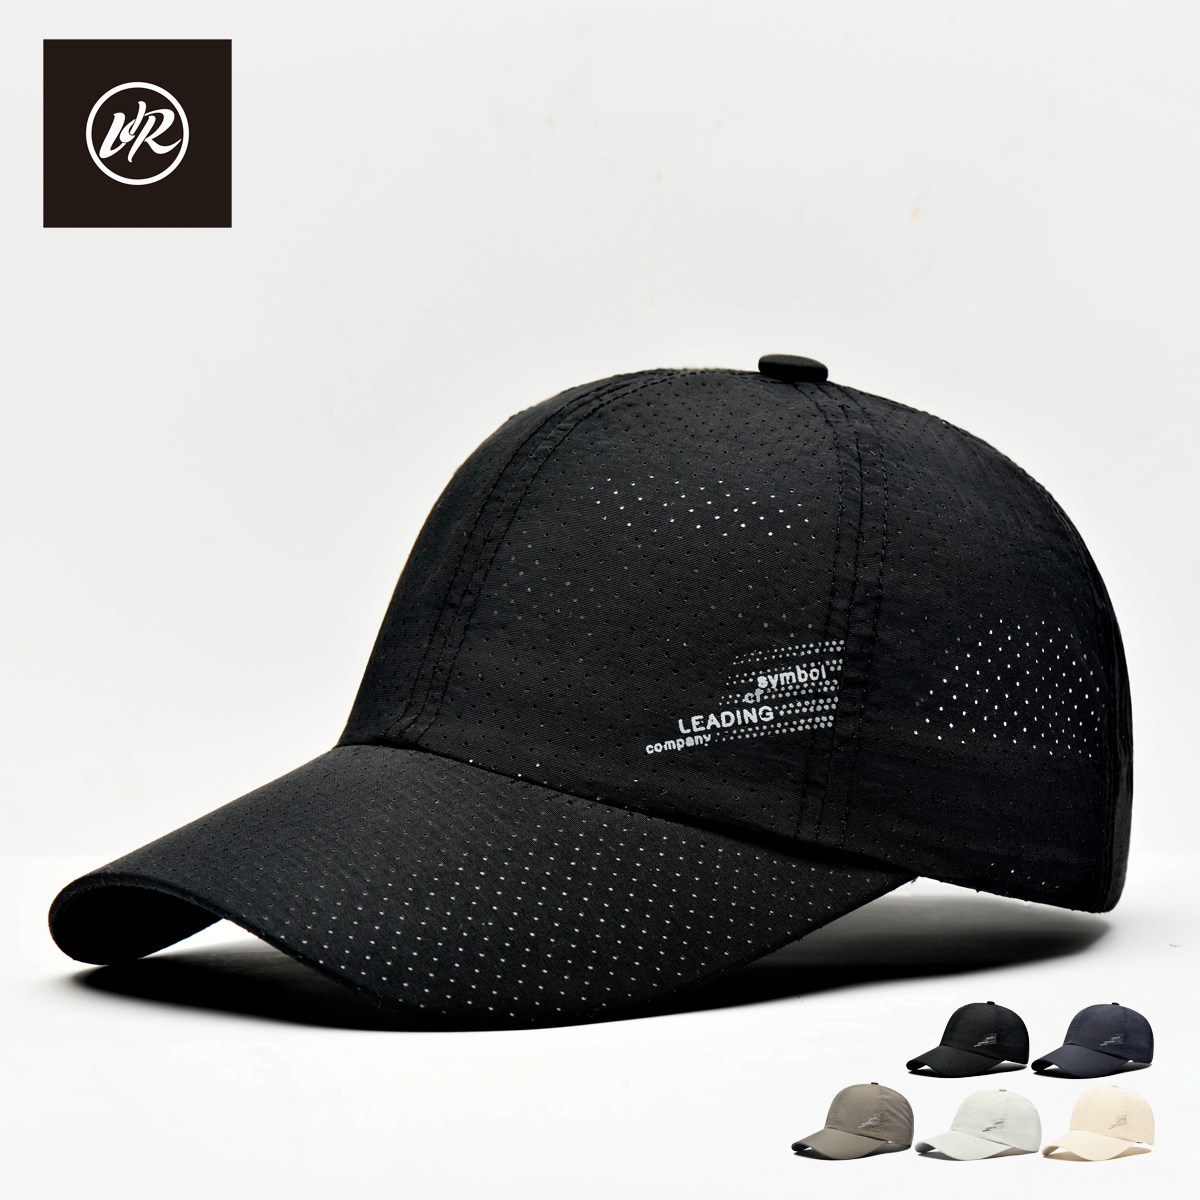 acf93925434 Summer fishing Korean Tide baseball hat male breathable sun hat female  sports running mountaineering cap sun hat